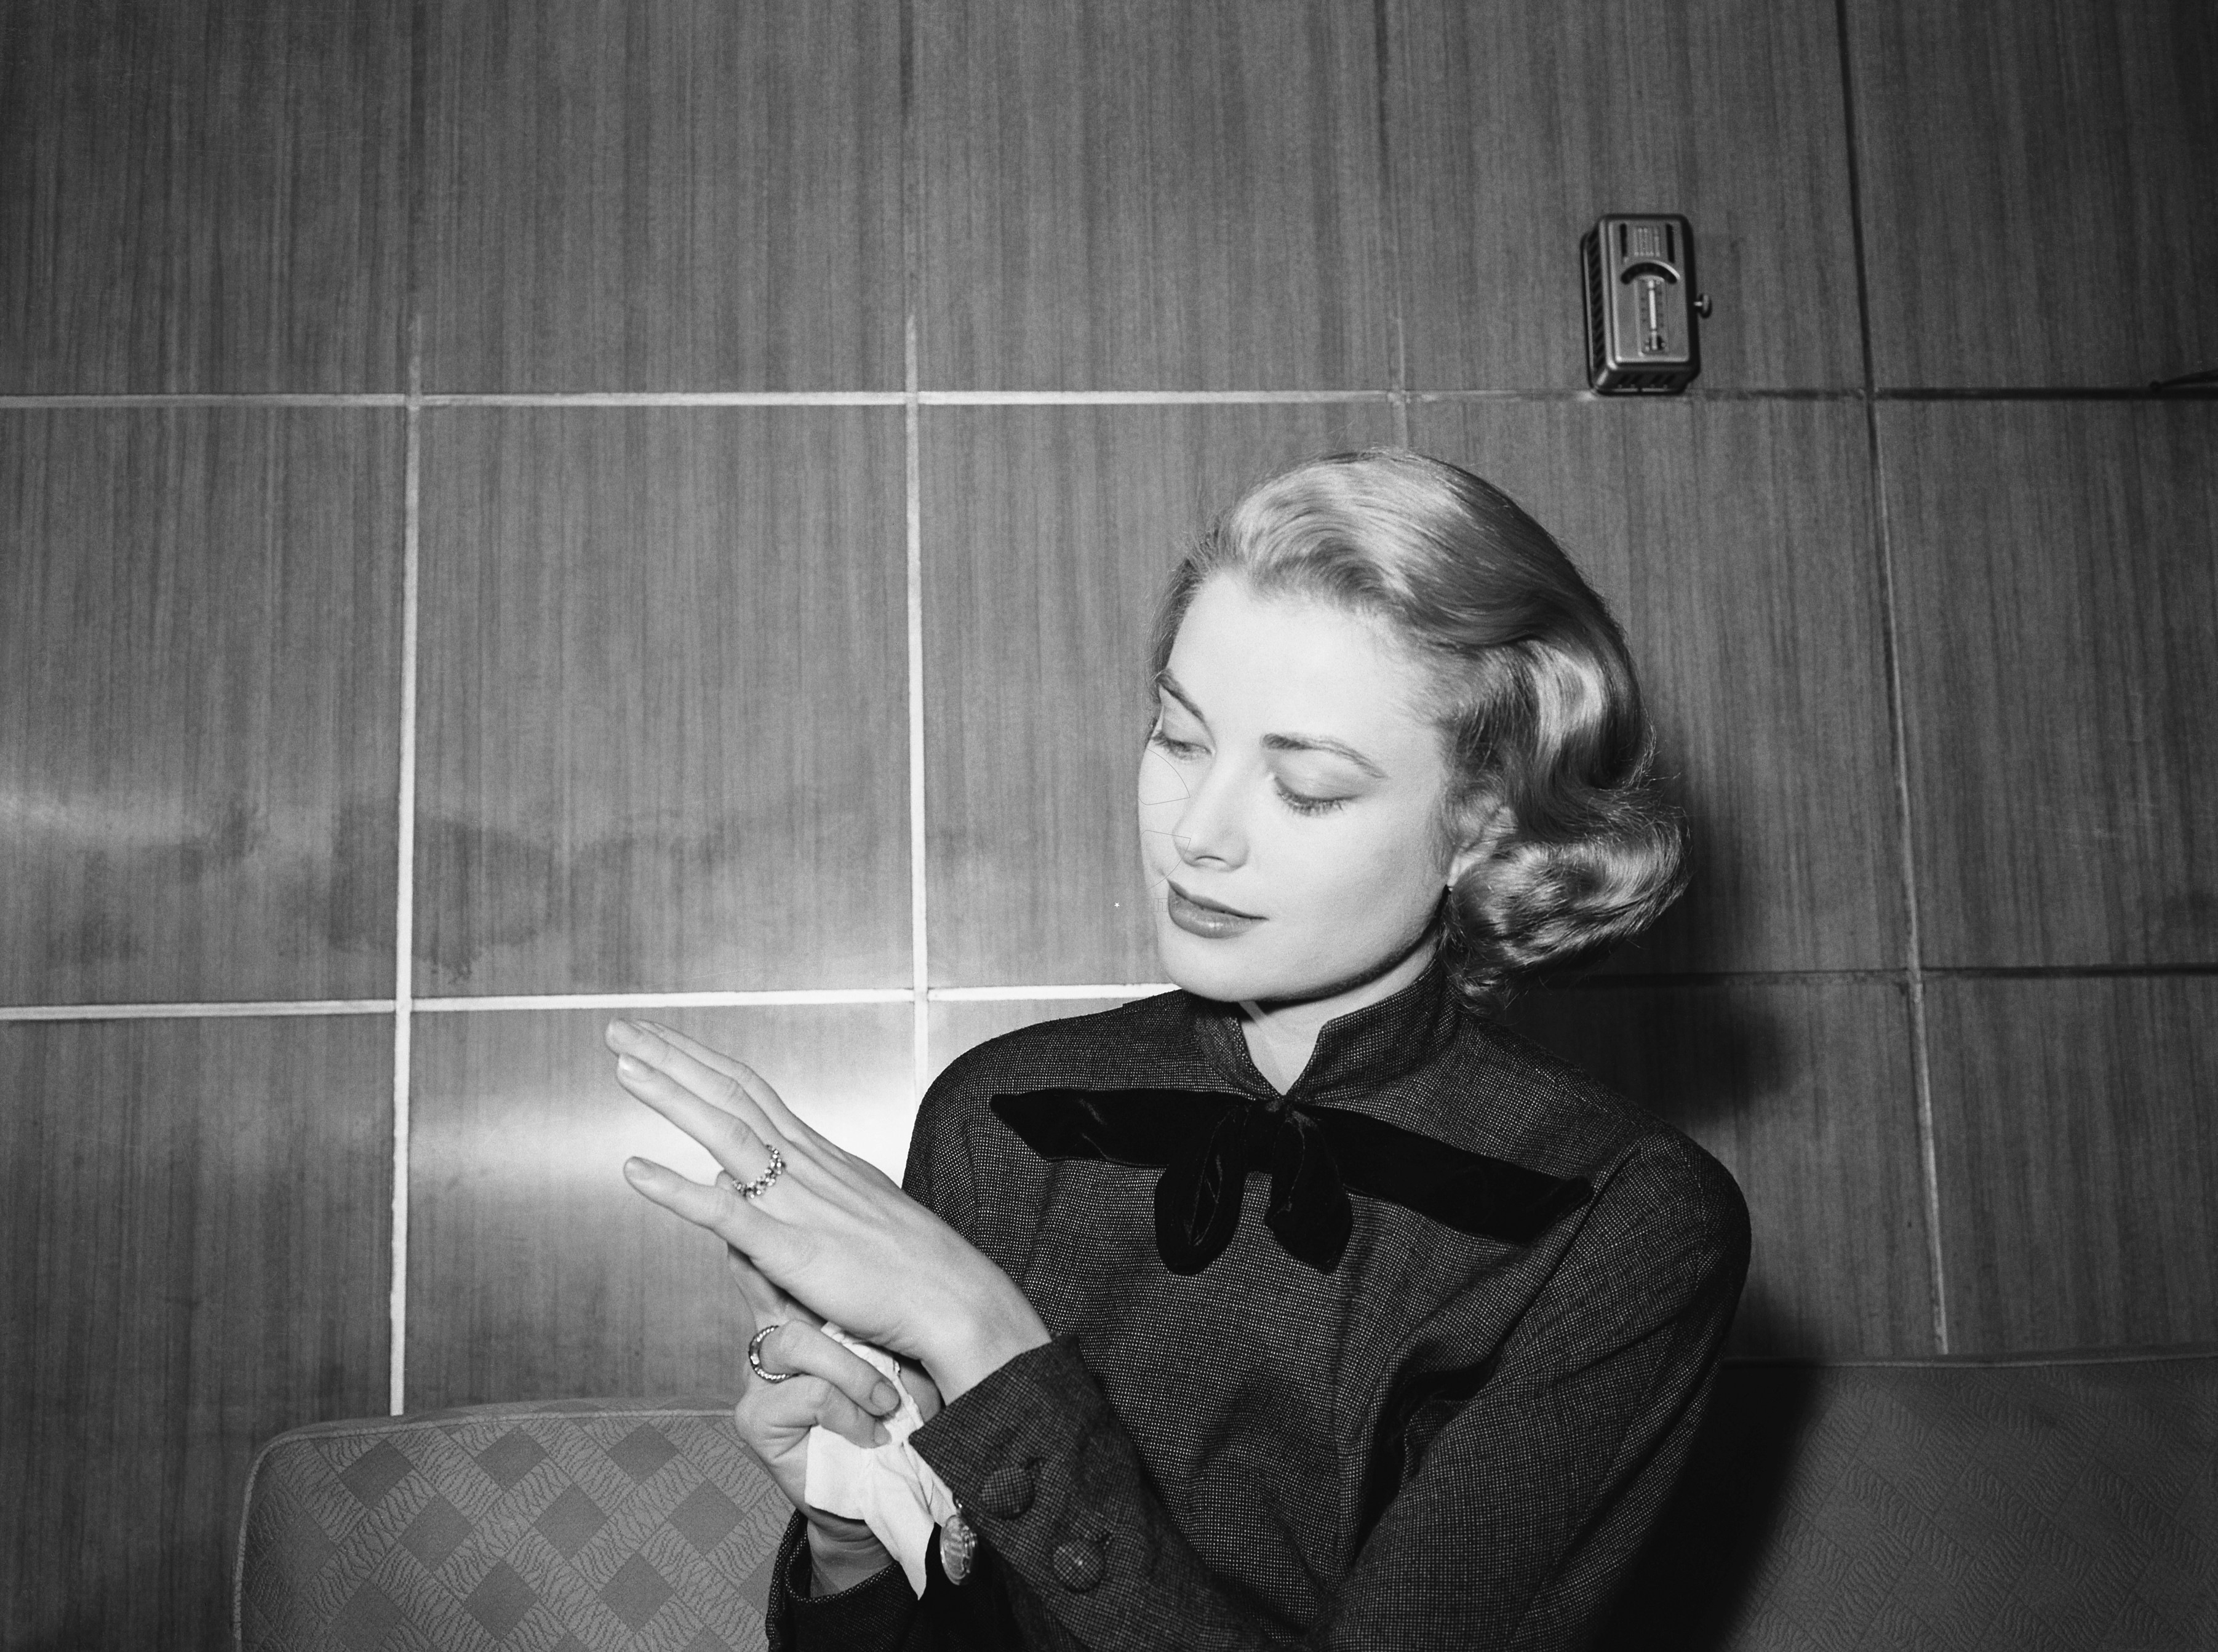 Original caption: 1/10/1956-Chicago, IL: Film actress Grace Kelly, en route to Hollywood for movie work, strikes a pose to show off the engagement ring given her by Prince Rainier III of Monico as she arrives in Chicago. Ther Princess to be posed amiably for photographers on her arrival by train from New York. Rainier will join her on the coast next month, and they will be wedd after her film commitments are completed.